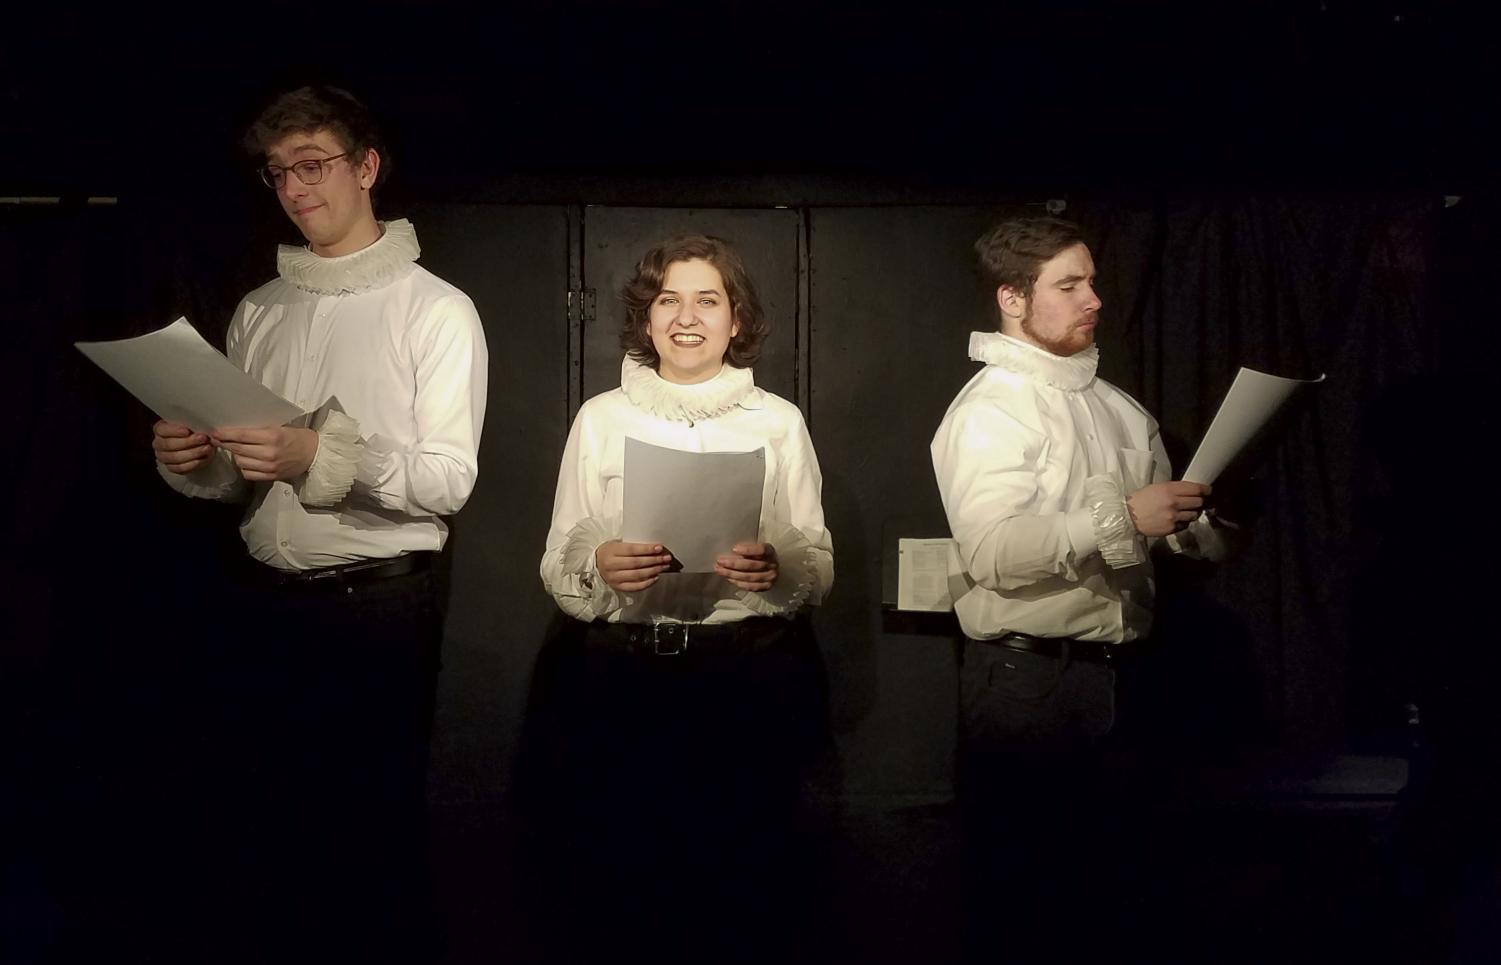 From left to right, second-year students Nathan Waniorek and Ashlen Trapalis and fourth-year student Alex Gordon recite lines from Shakespeare's comedies. Upper: During a scene in the production, a ghost visits two characters, portrayed by second-year student Ashlen Trapalis and fourth-year student Alex Gordon.